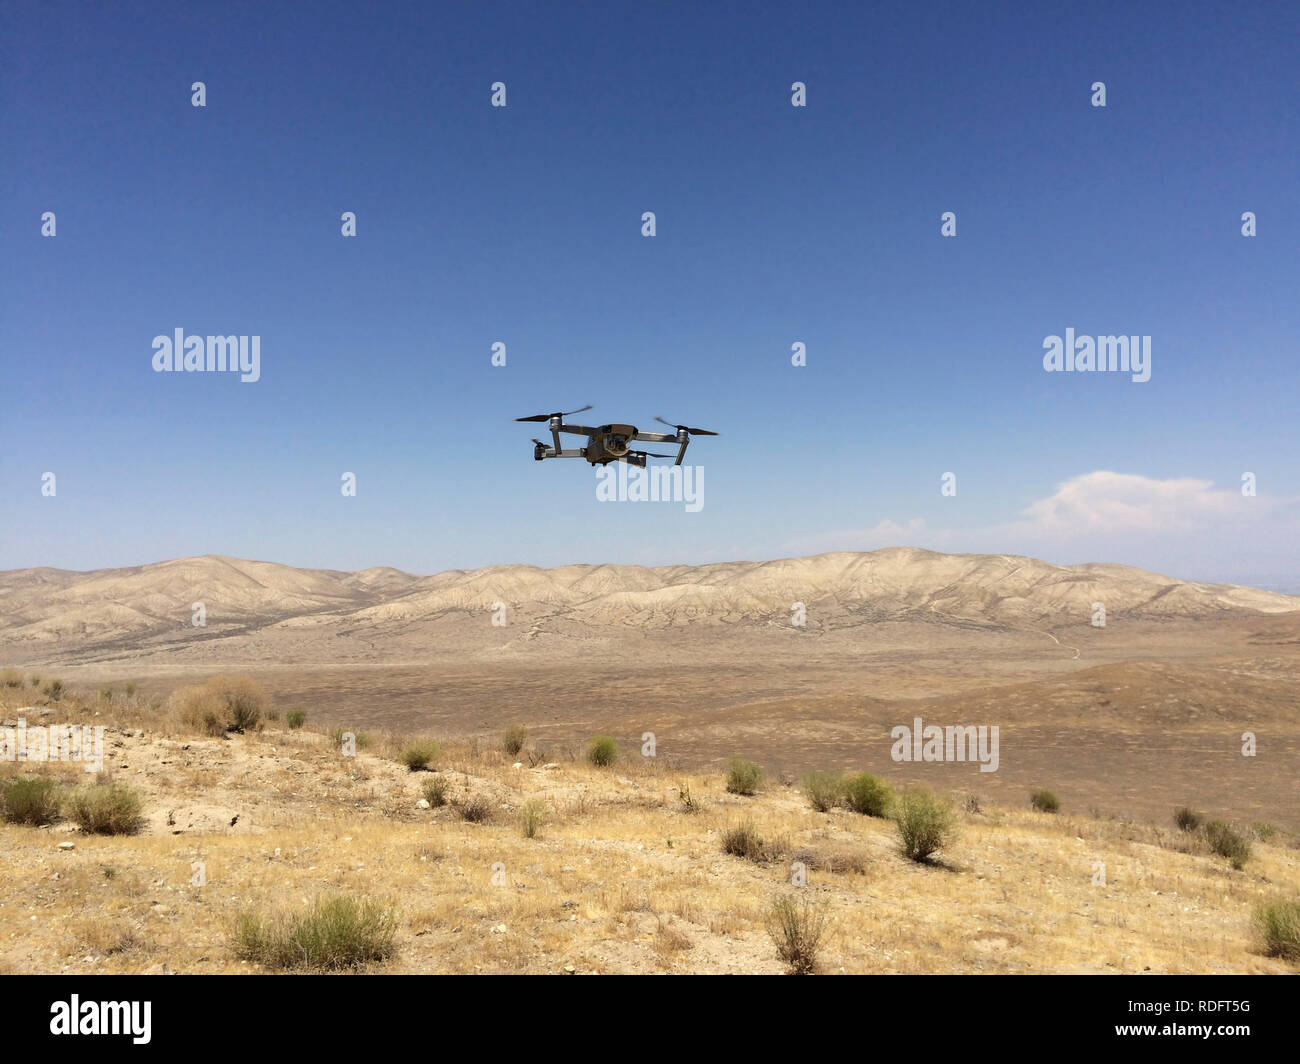 DJI Mavic Pro drone hovering over desert landscape ( camera drone ) - California USA - Stock Image